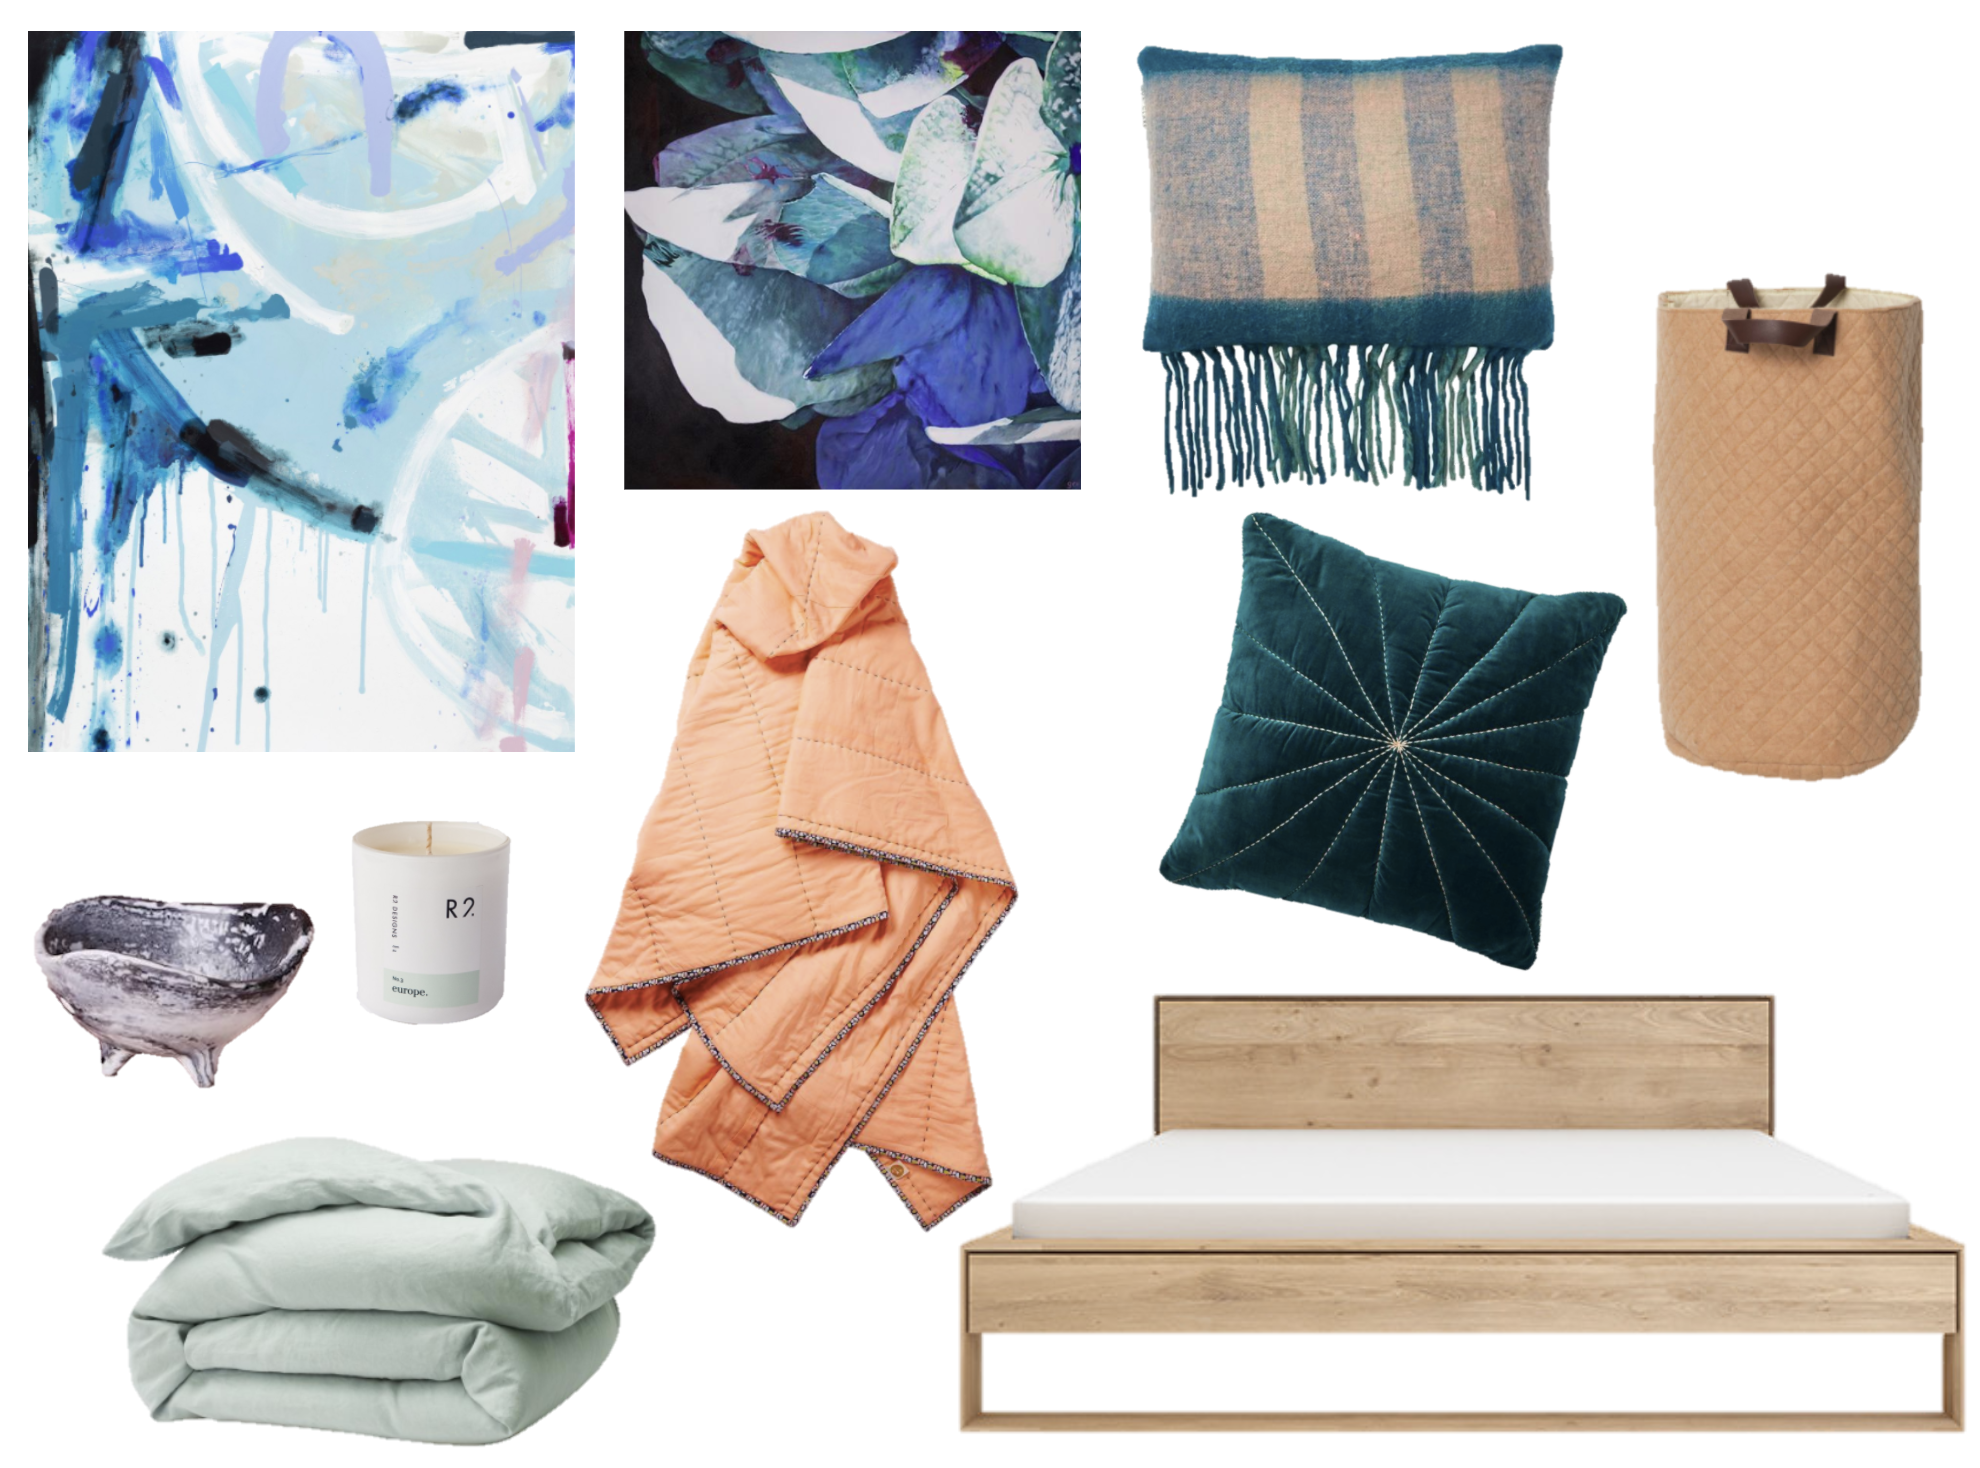 Prudence Caroline Captain of the Clouds /  Georgie Wilson Danger Hydrangea /  Turquoise Check cushion /  Turquoise Velvet cushion /  Moonlight quit cover /  Peach blanket /  Storage basket /  Ceramic dish /  Candle